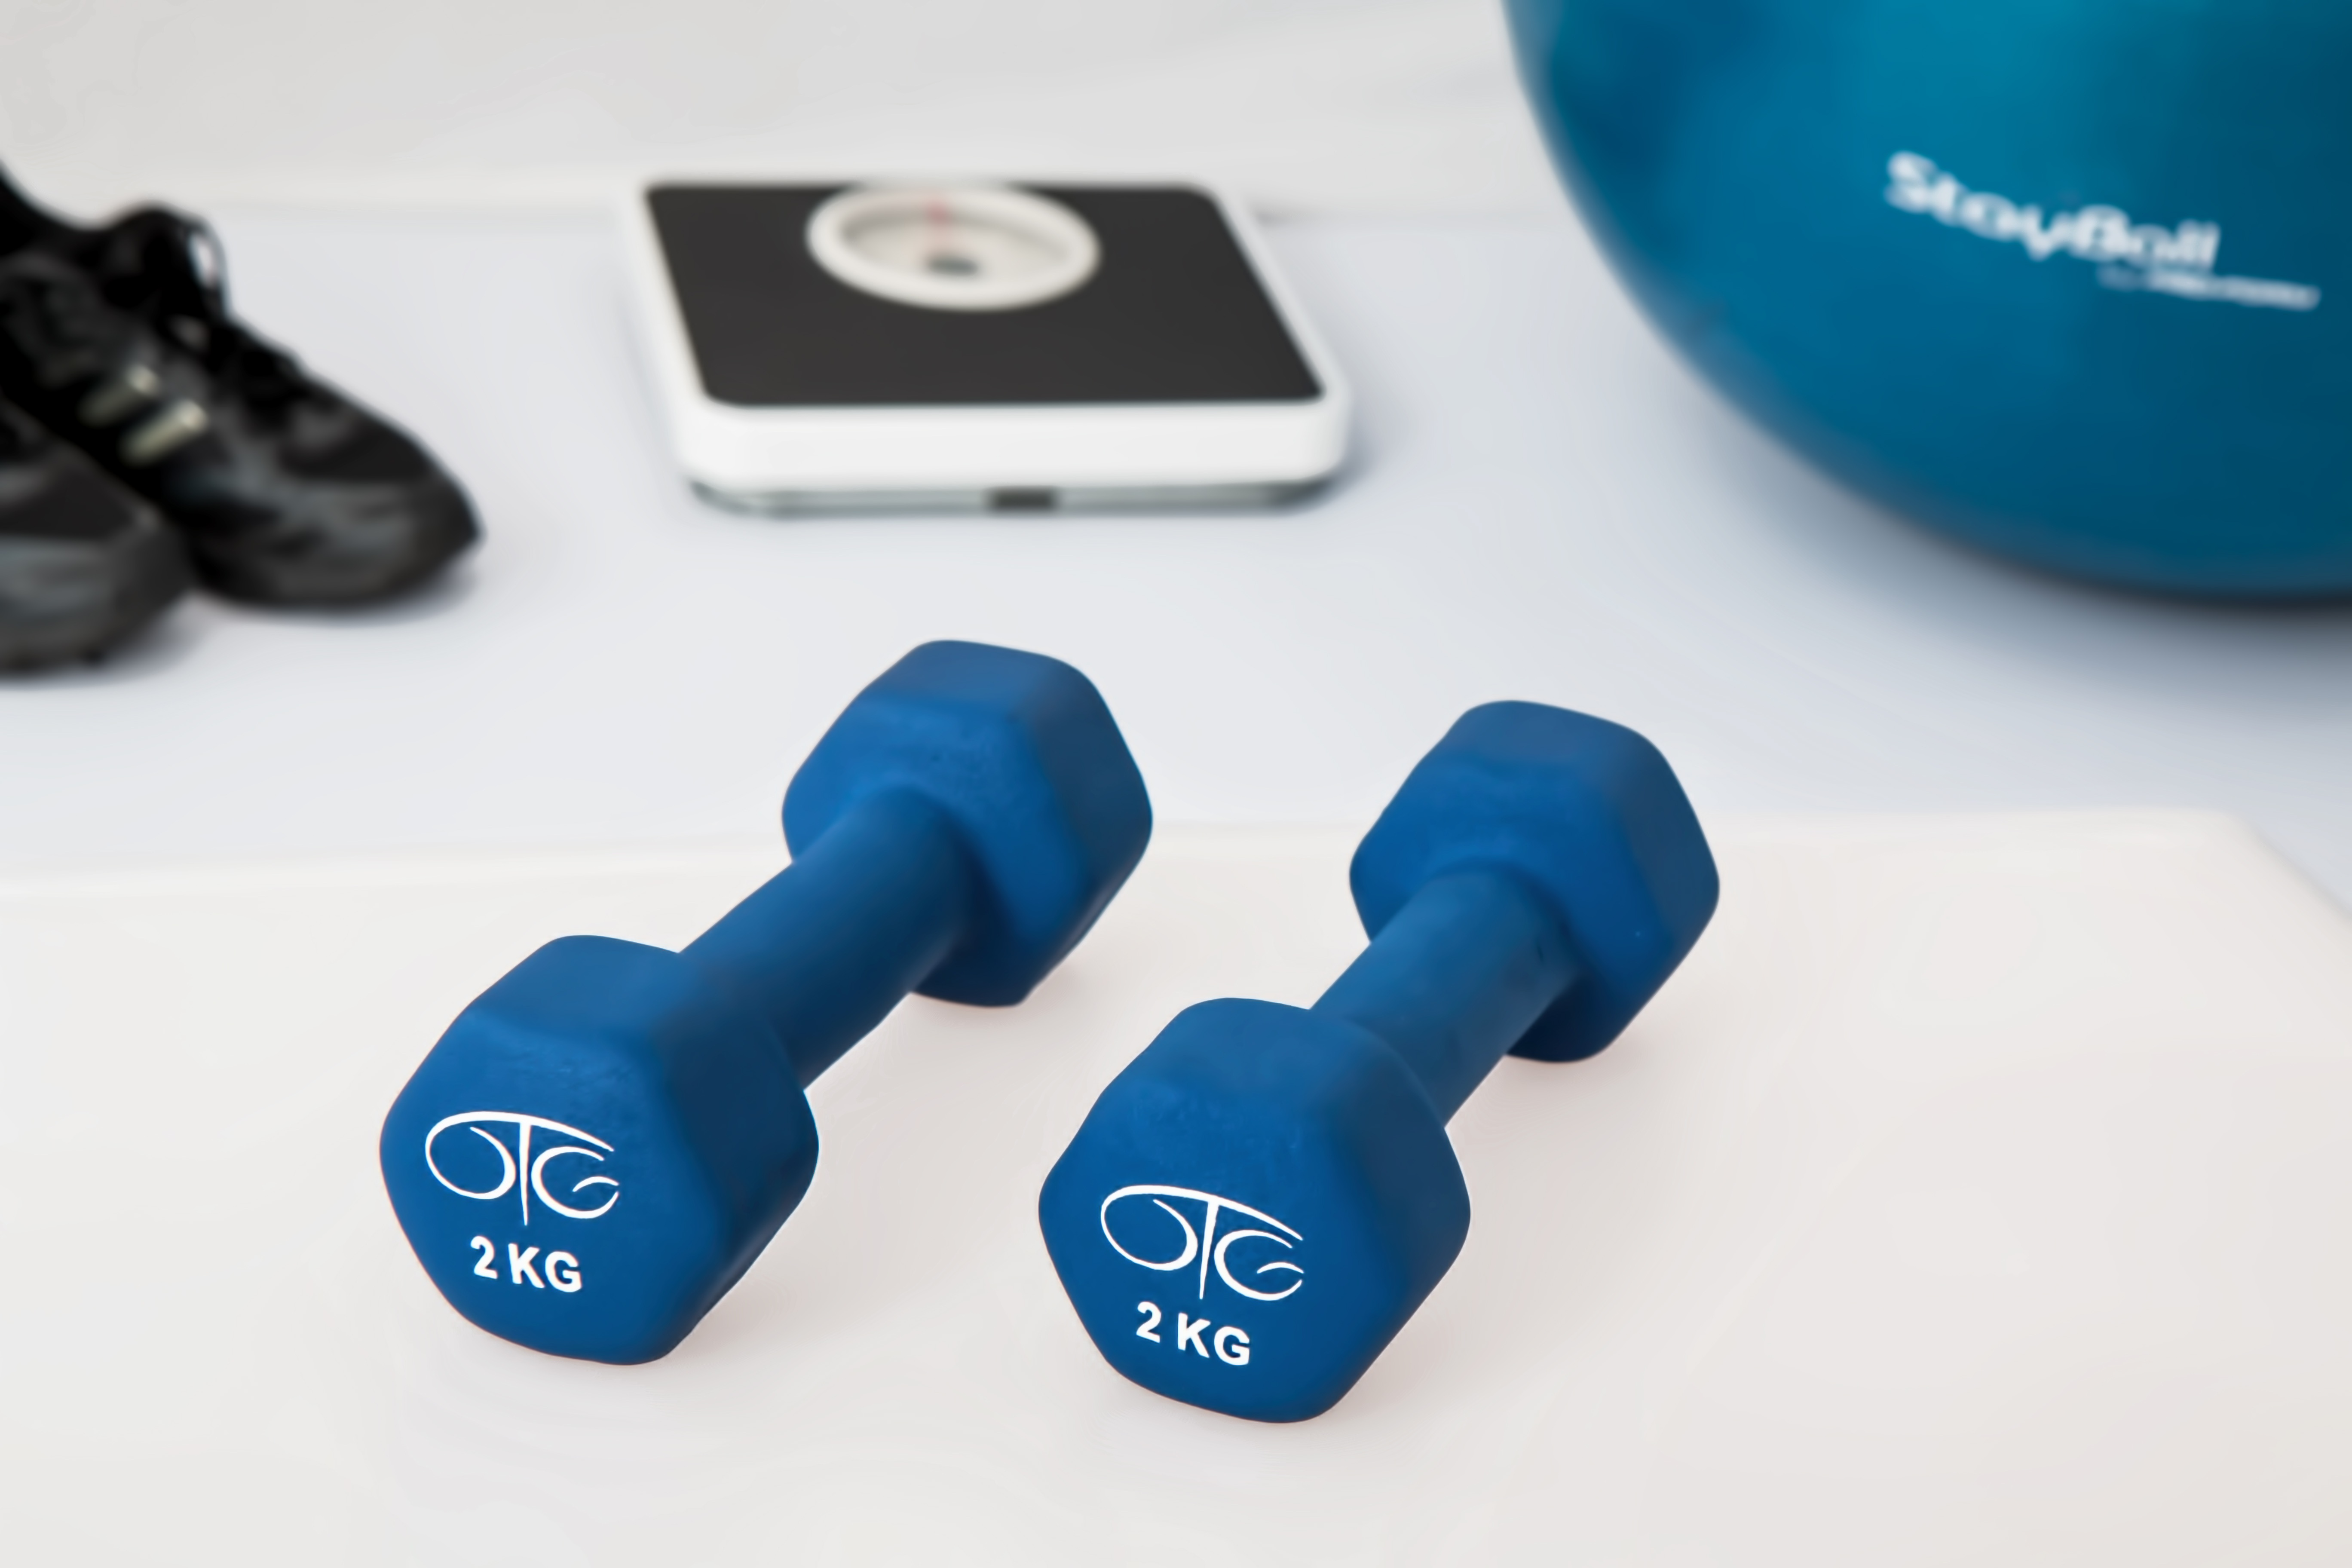 physiotherapy-weight-training-dumbbell-exercise-balls-39671